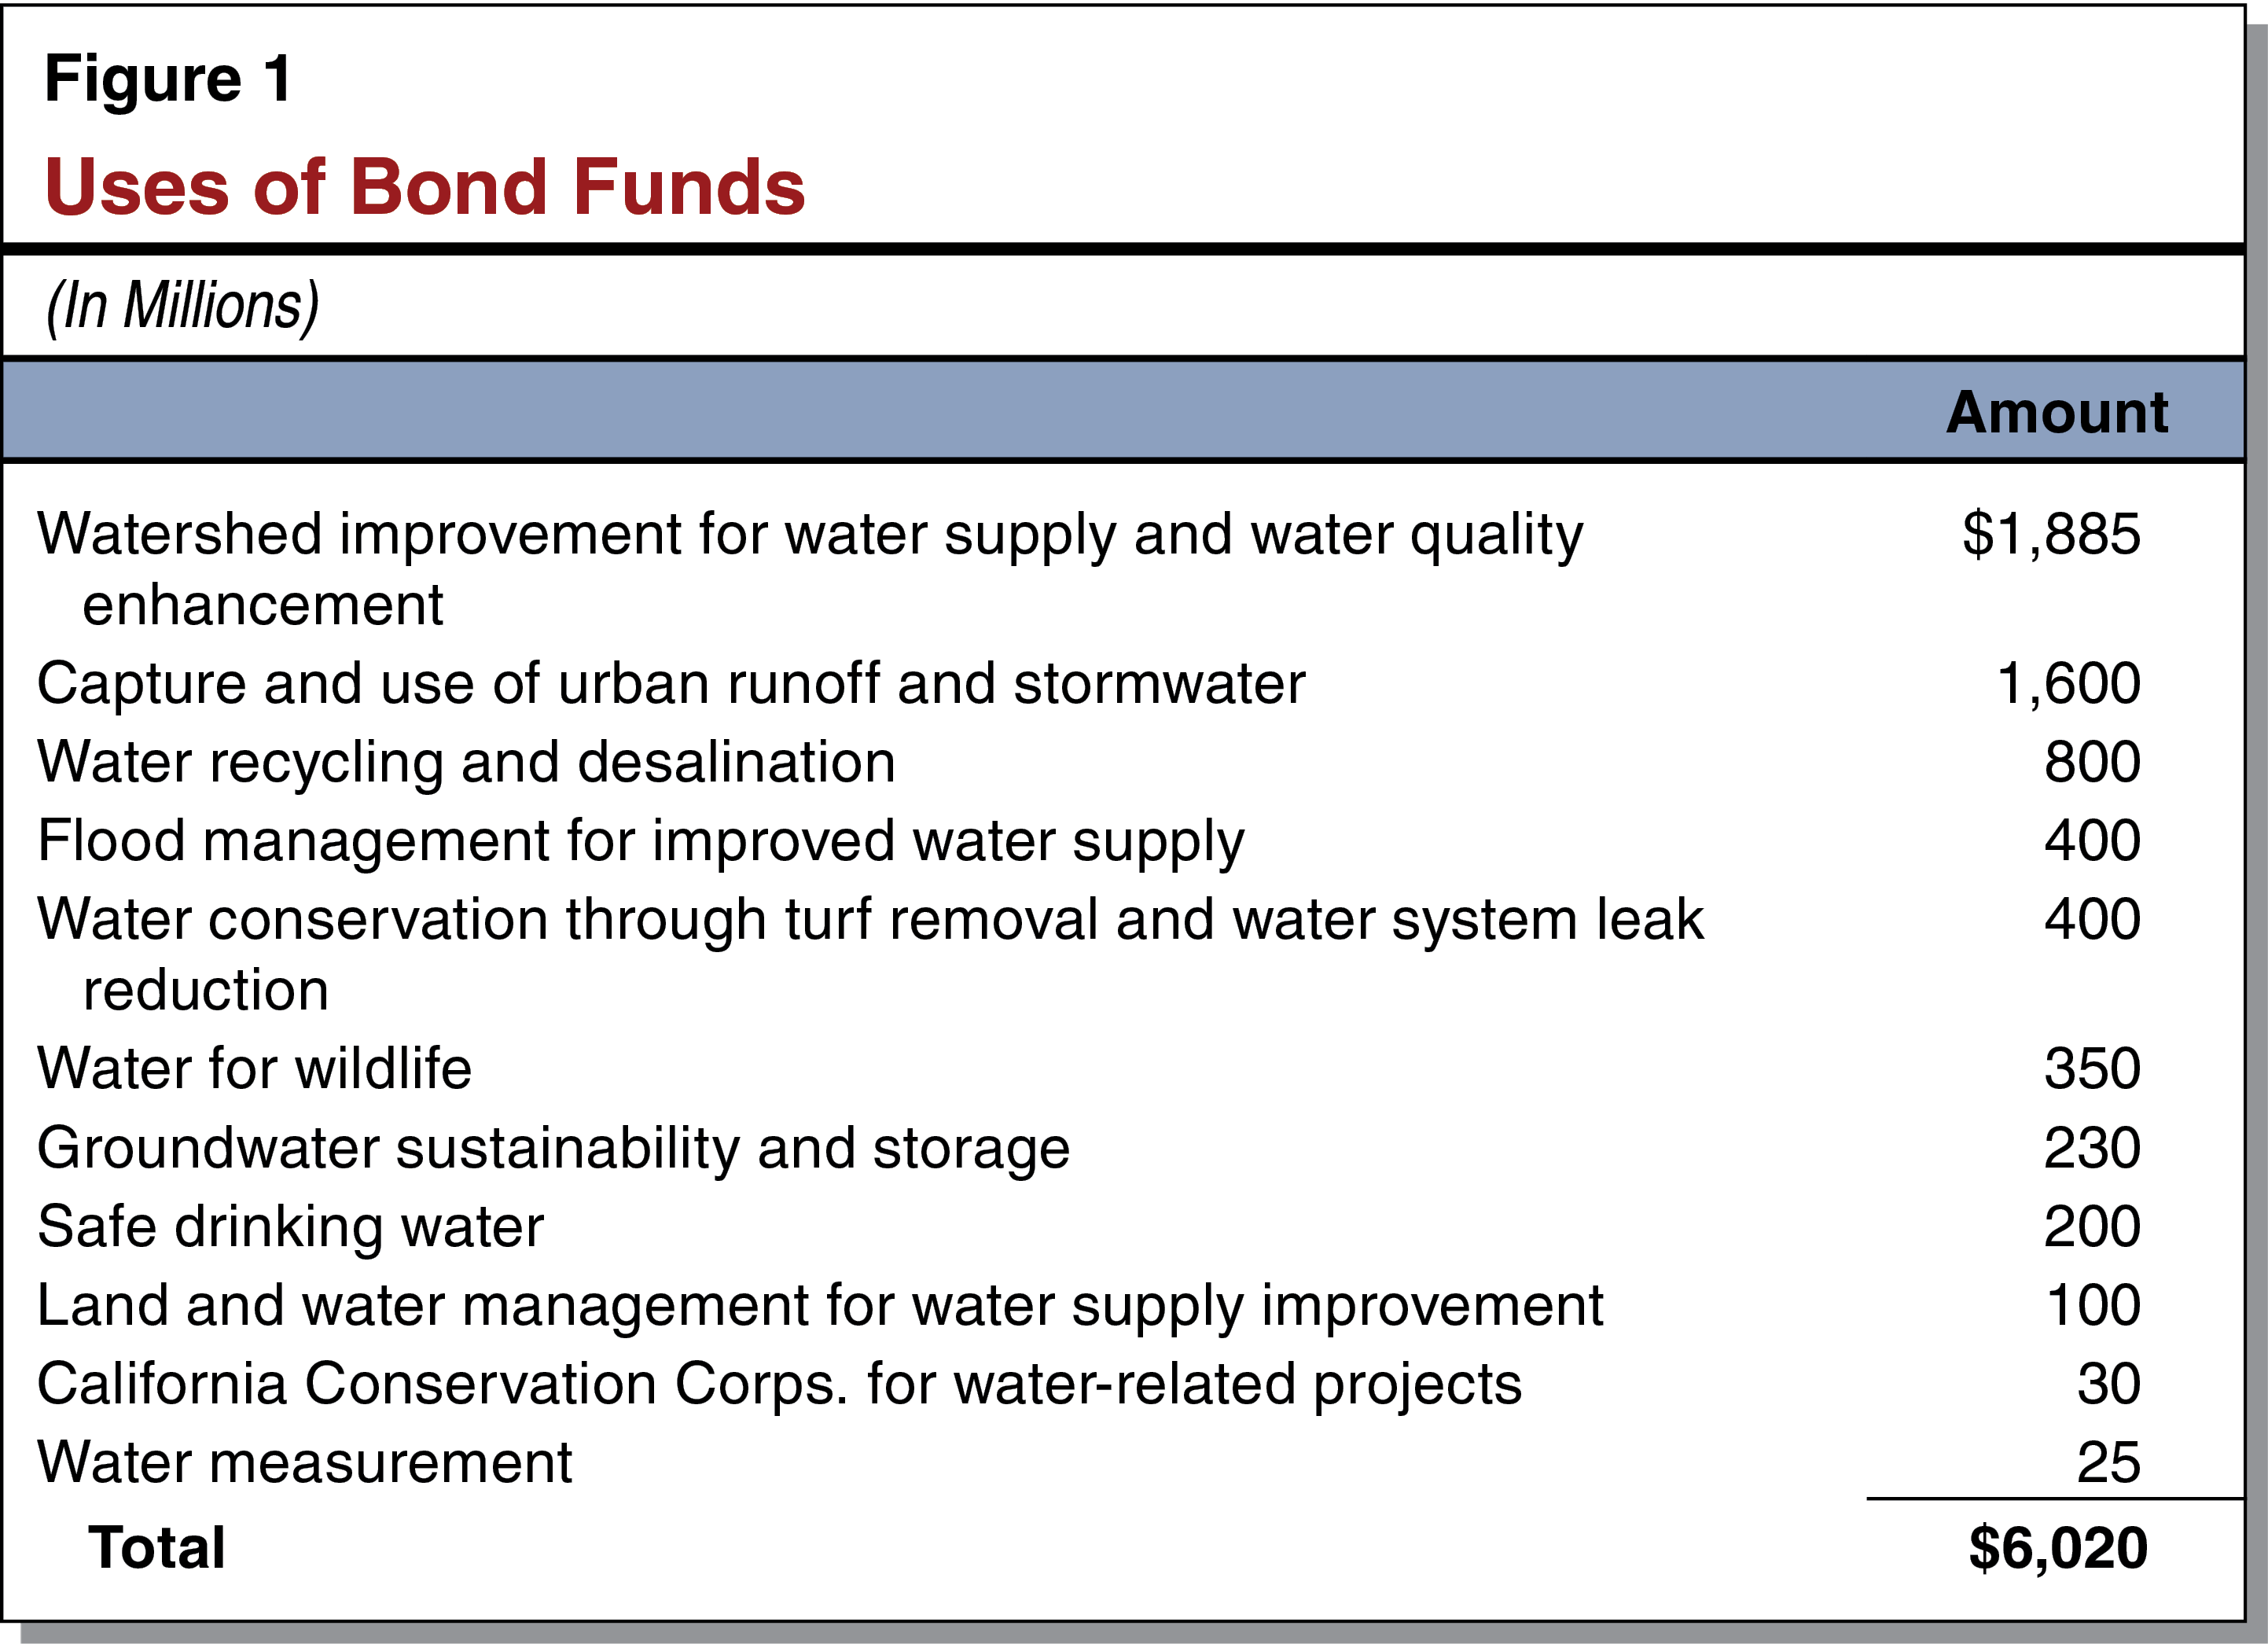 Use of Bond Funds